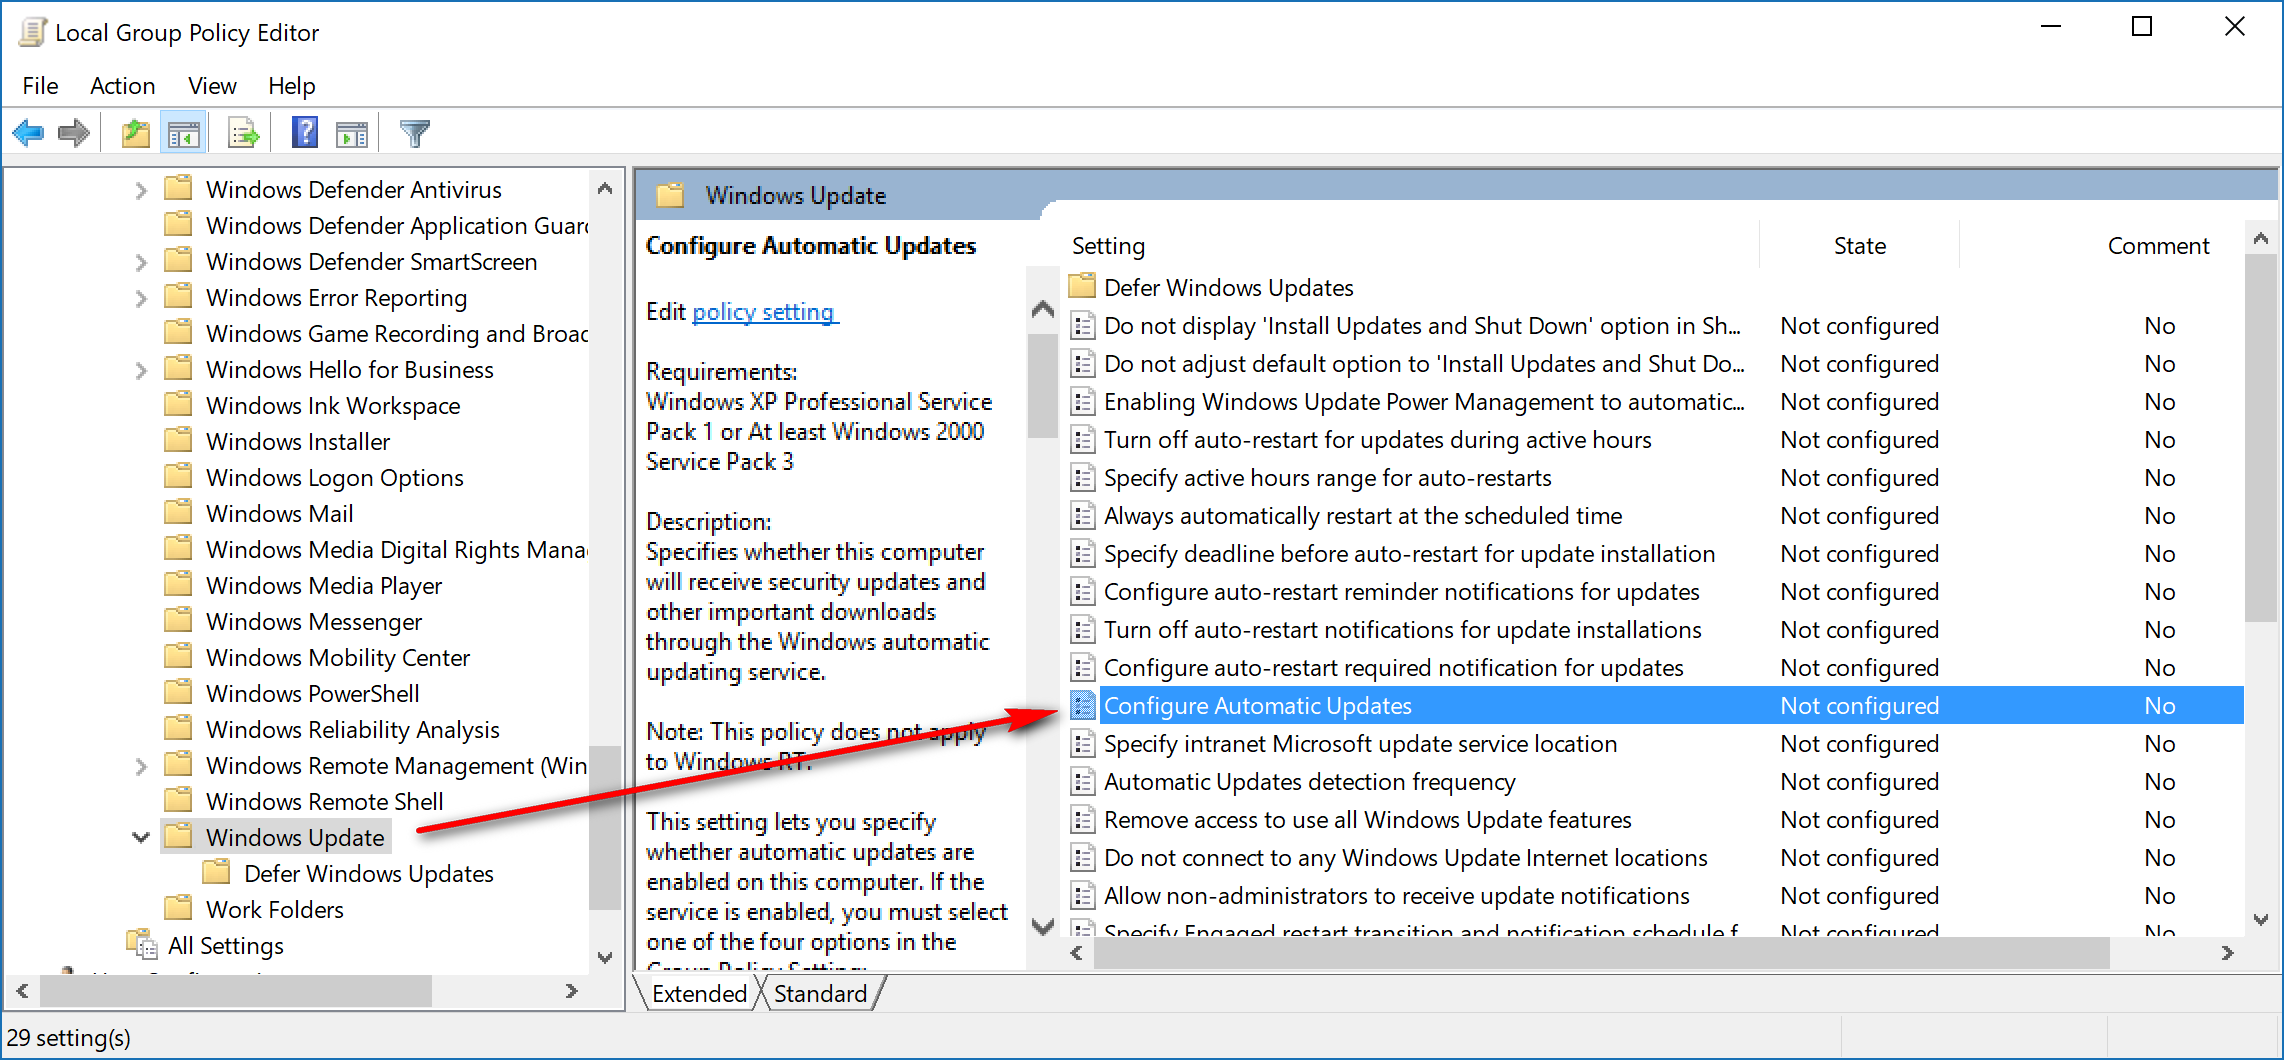 How to enable or disable automatic updates for Windows